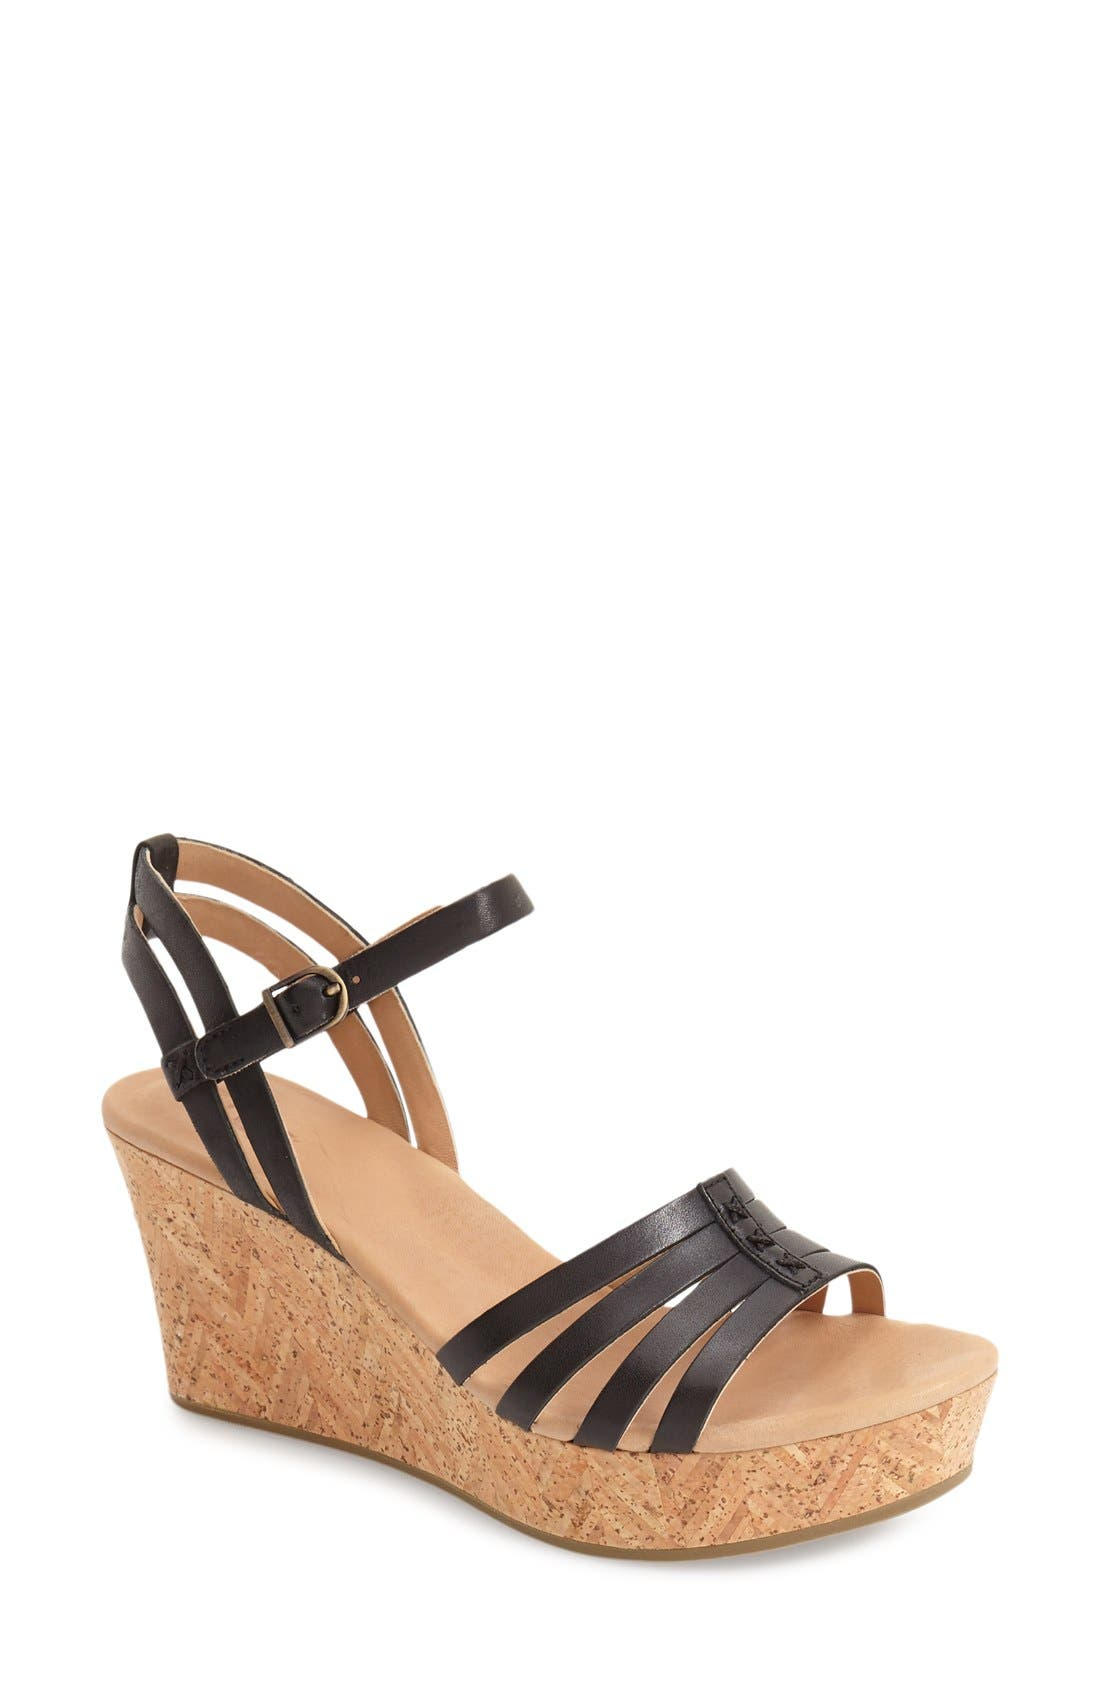 Alternate Image 1 Selected - UGG® 'Brigitte' Wedge Sandal (Women)